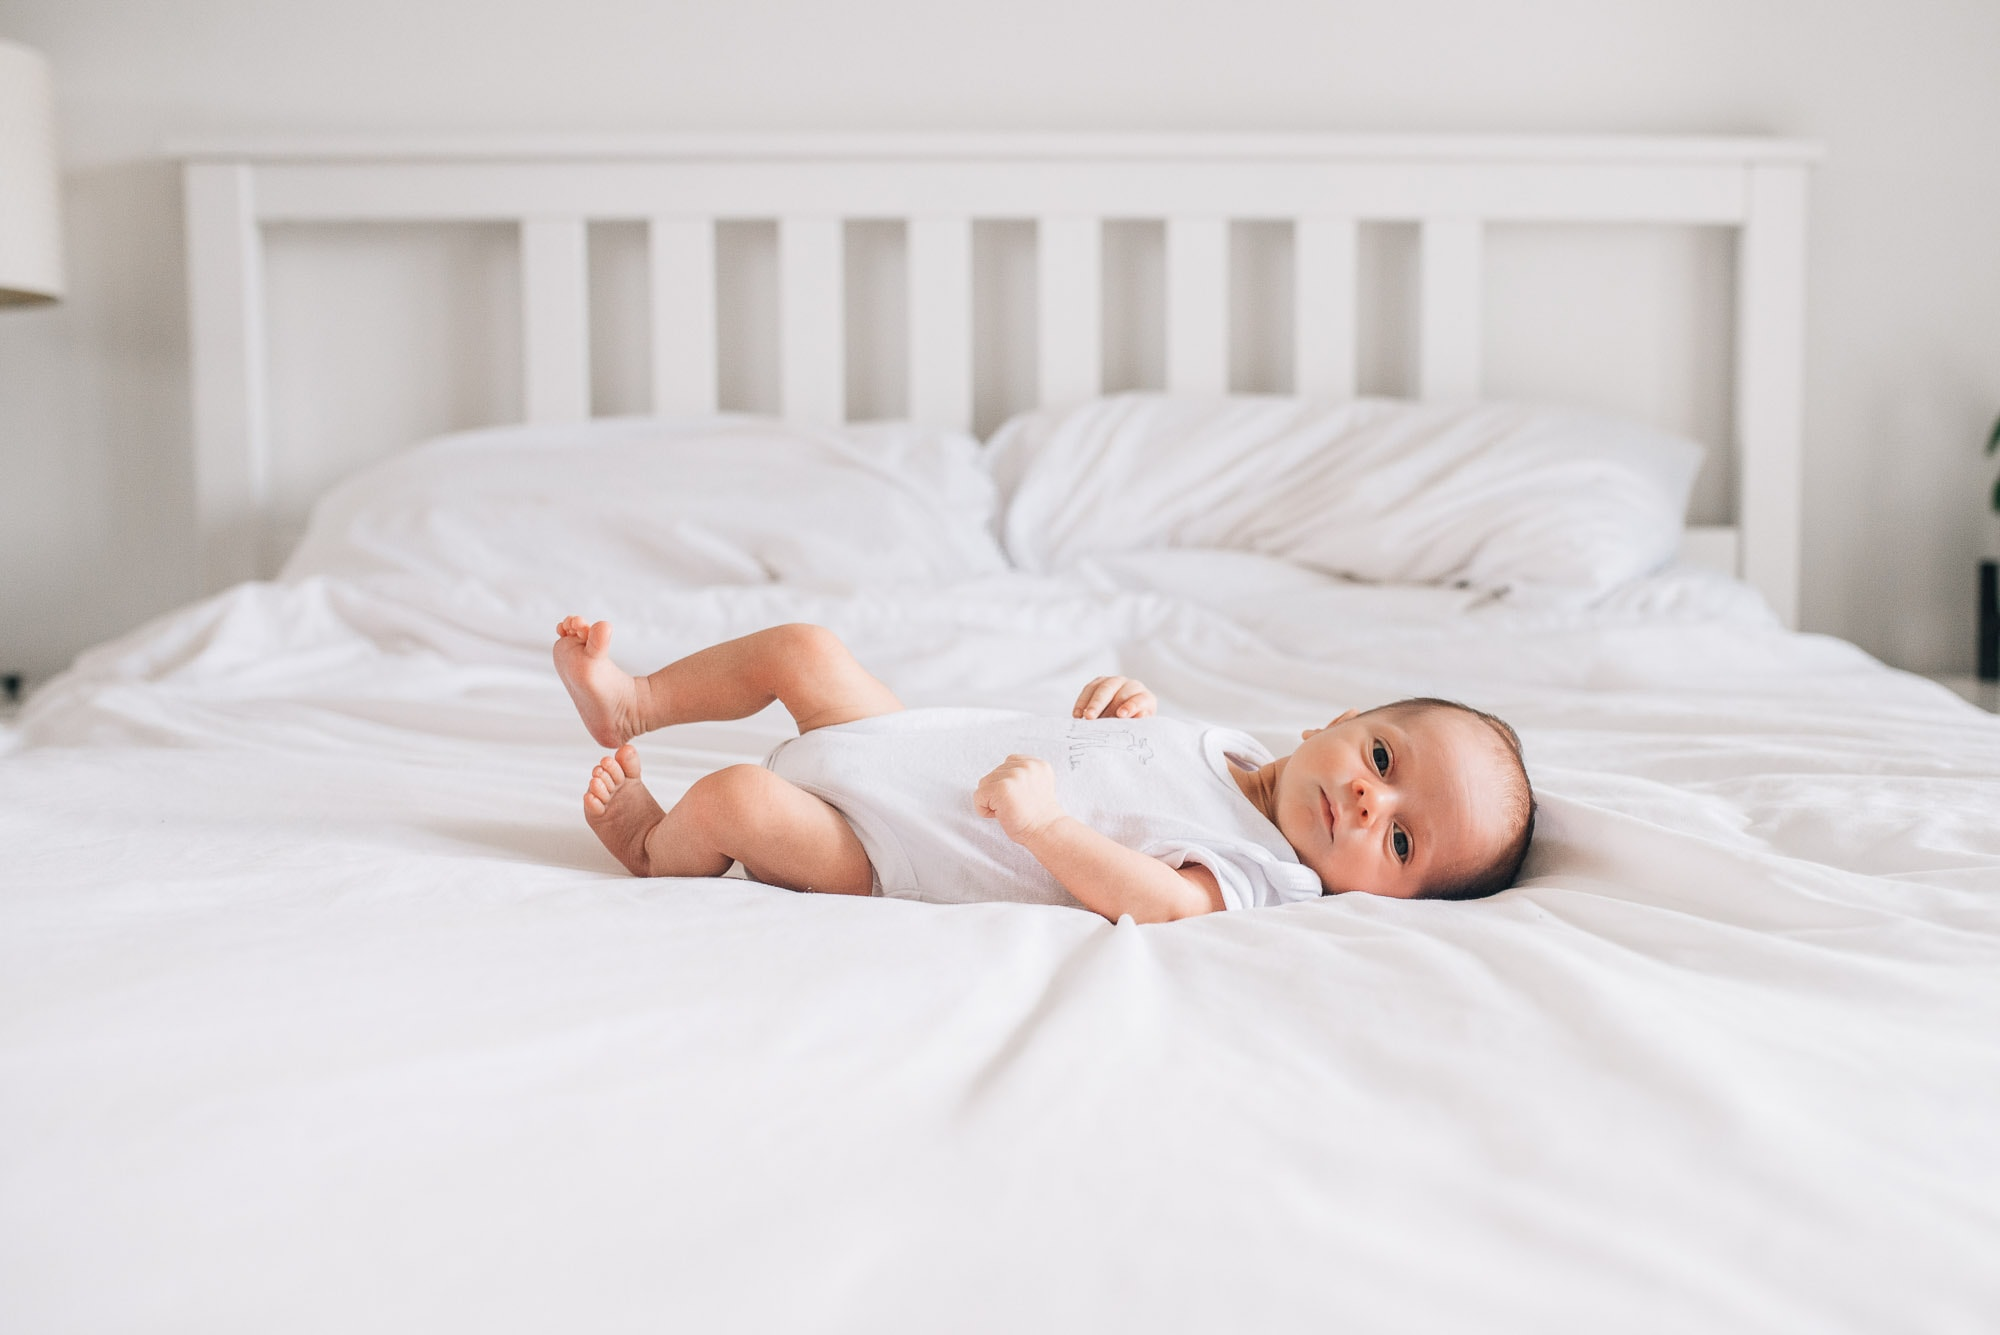 vancouver newborn photographer captures baby lying on bed